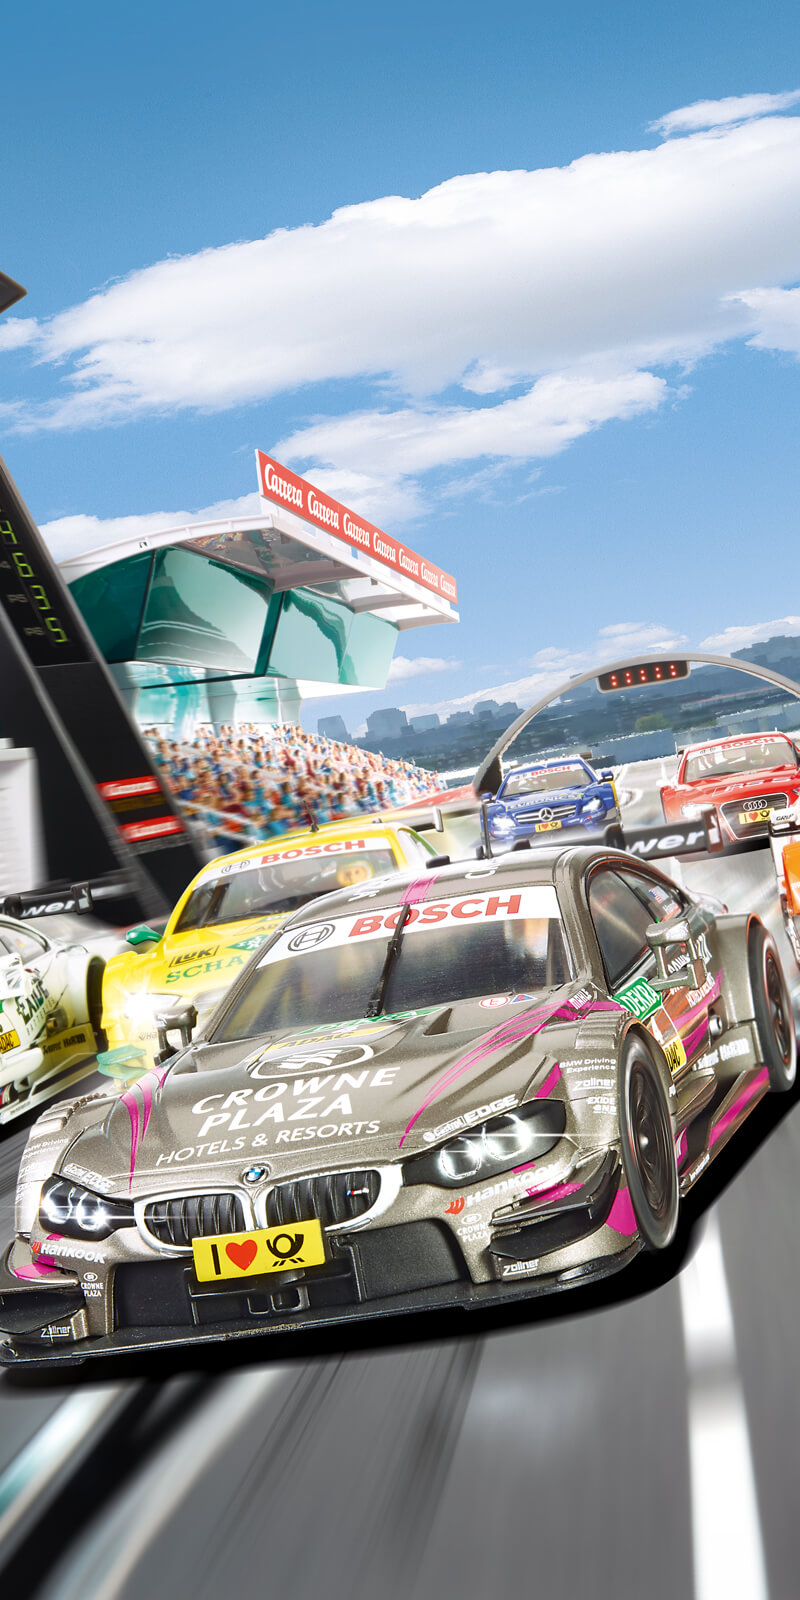 The DTM route planner